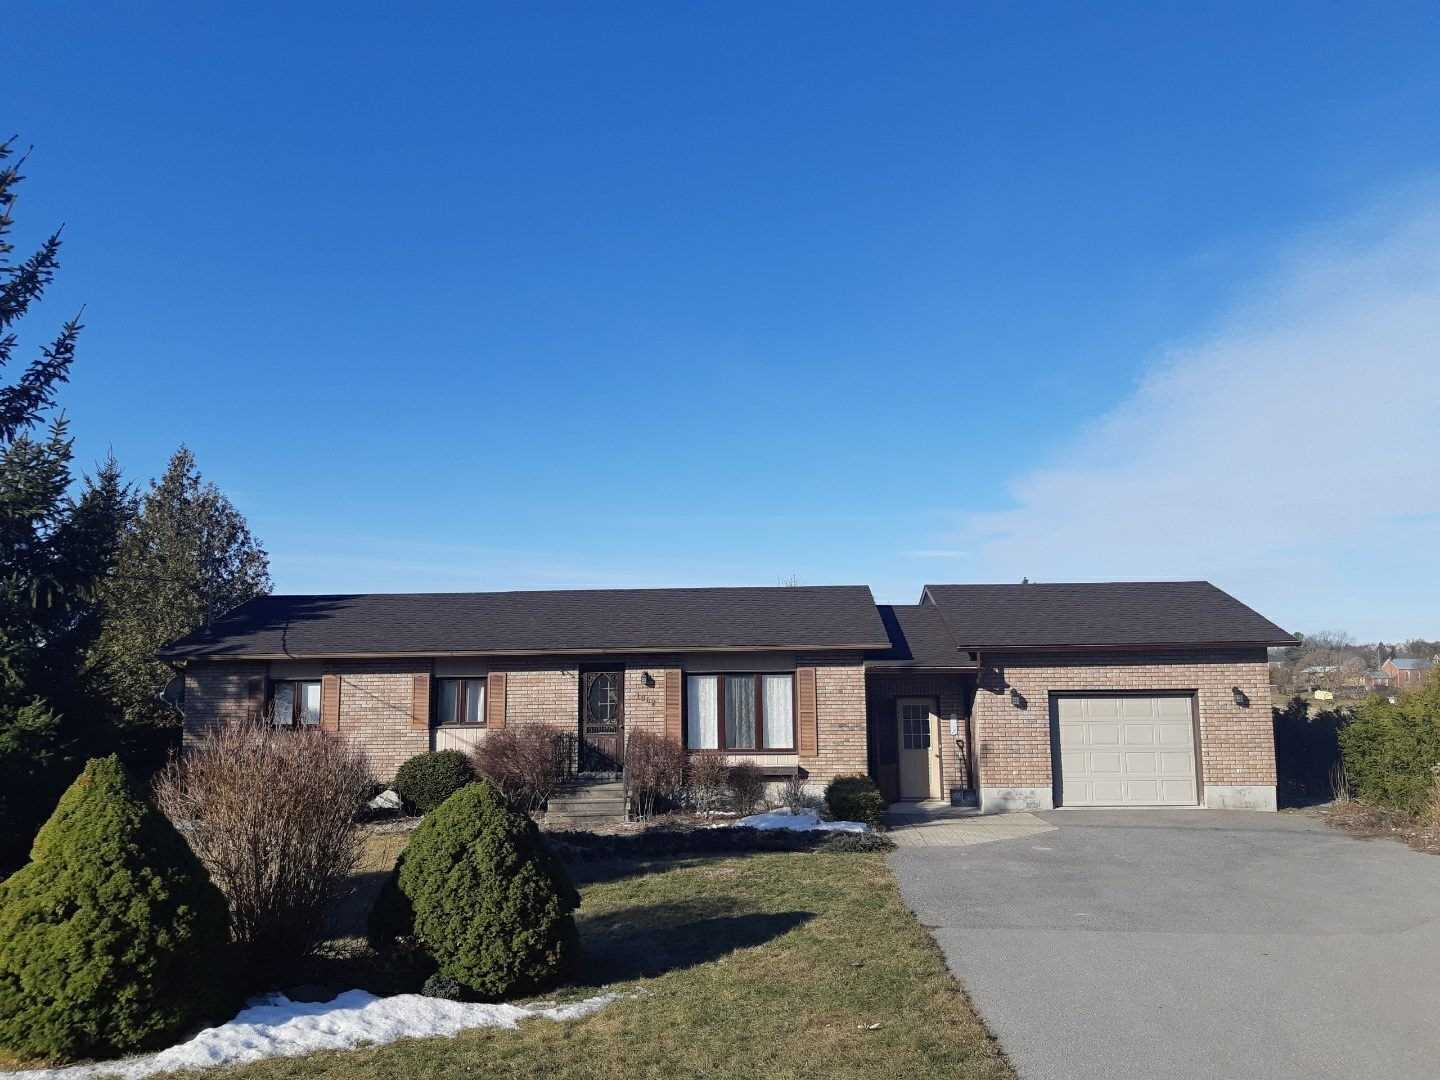 pictures of house for sale MLS: X4722752 located at 1068 Serpent Mounds Rd, Otonabee-South Monaghan K0L2G0